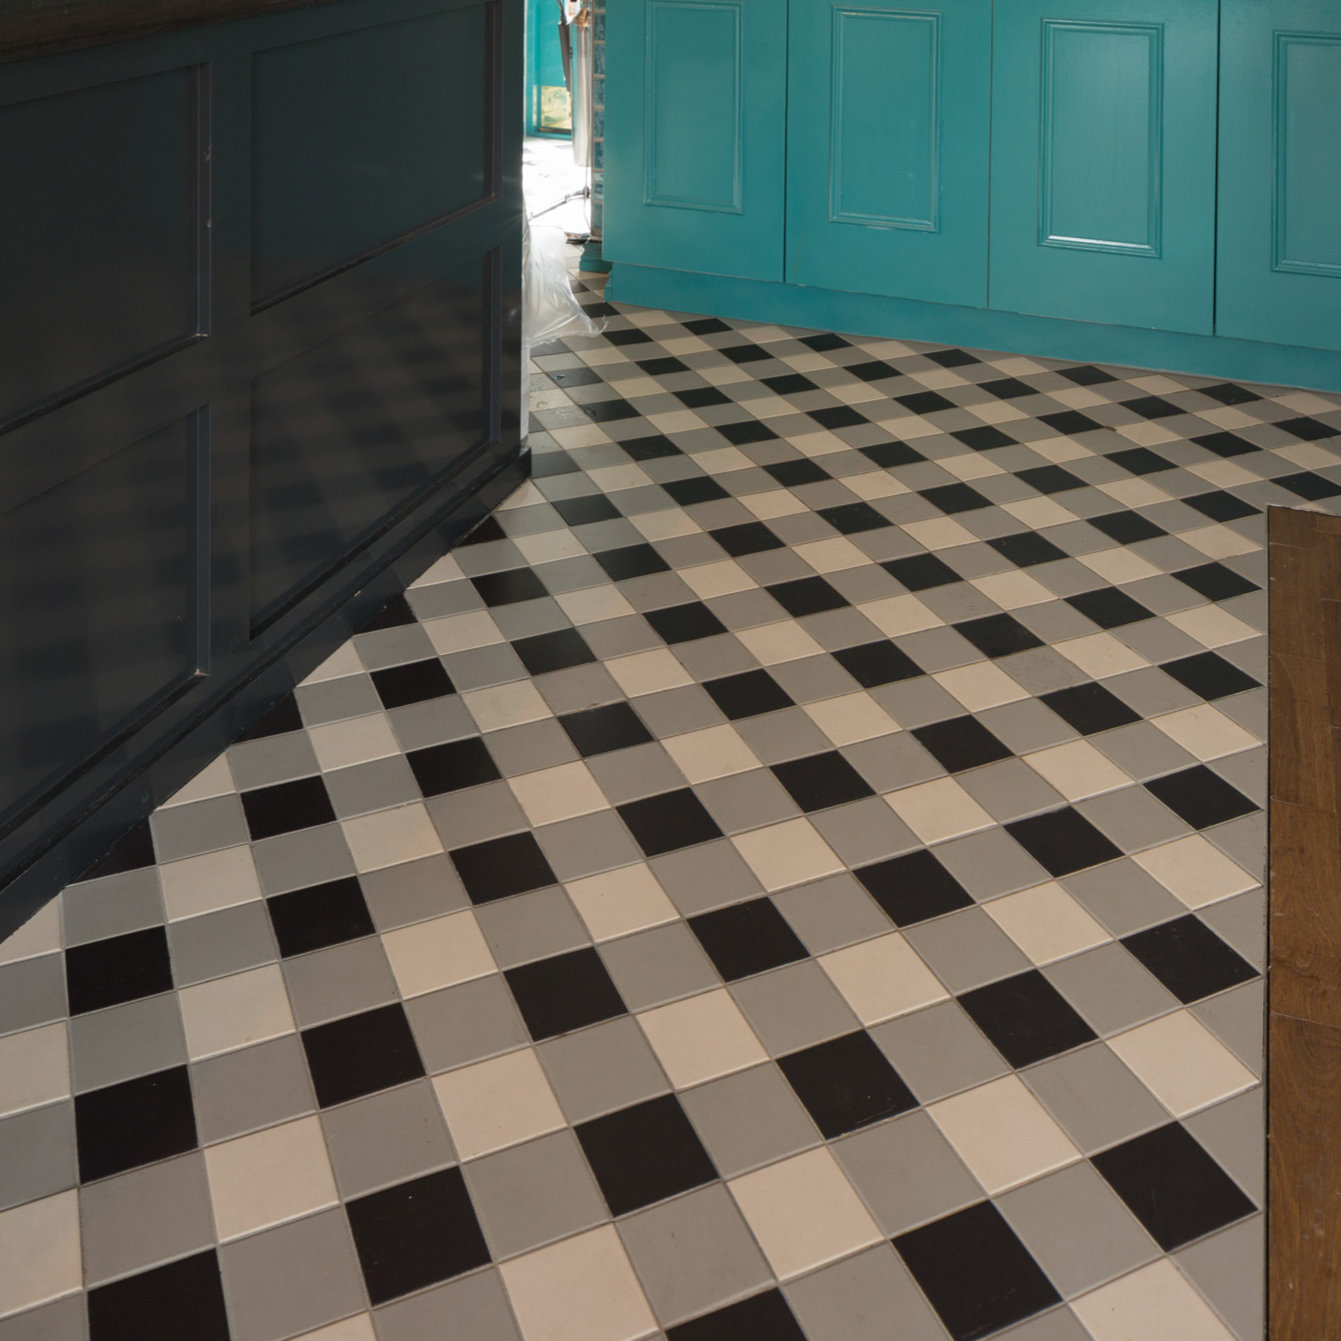 Os victorian floor ceramic tiles borderlocation original stylevftdorchester dover white grey black with winchester residence wall tileslocation dailygadgetfo Gallery